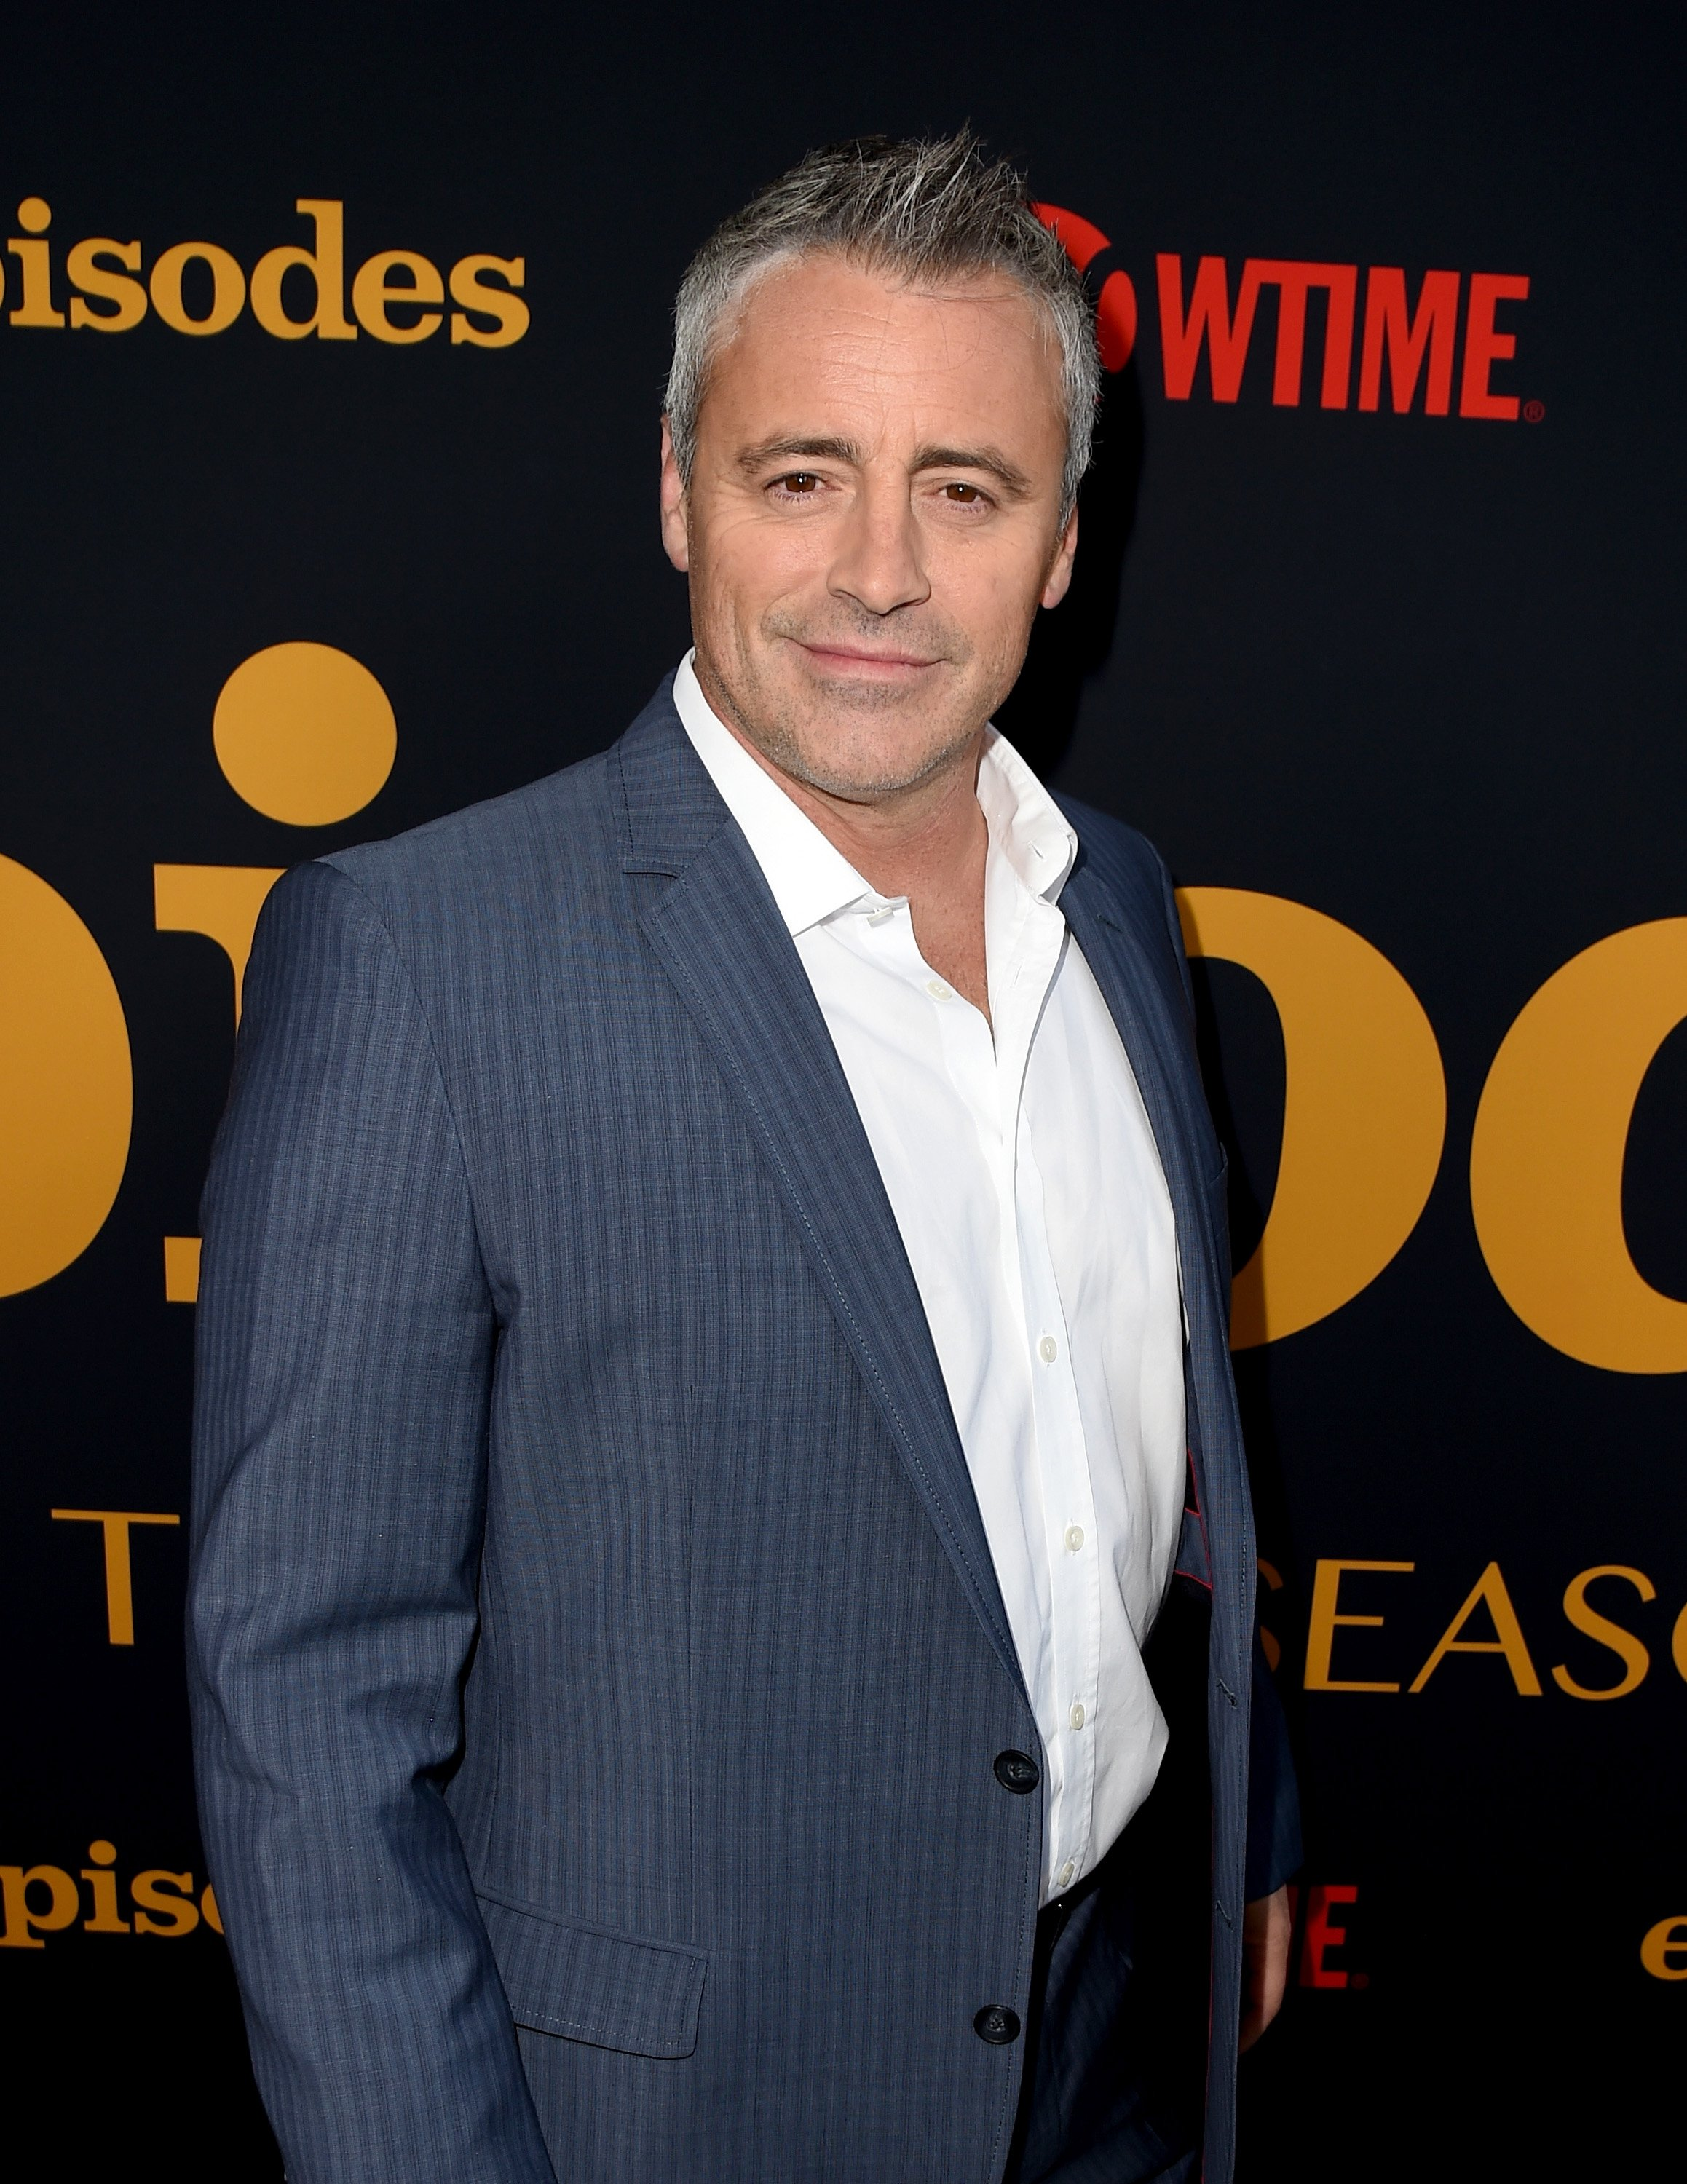 """Matt LeBlanc arrives at a party for """"Episodes"""" on August 15, 2017, in Los Angeles, California.   Source: Getty Images."""